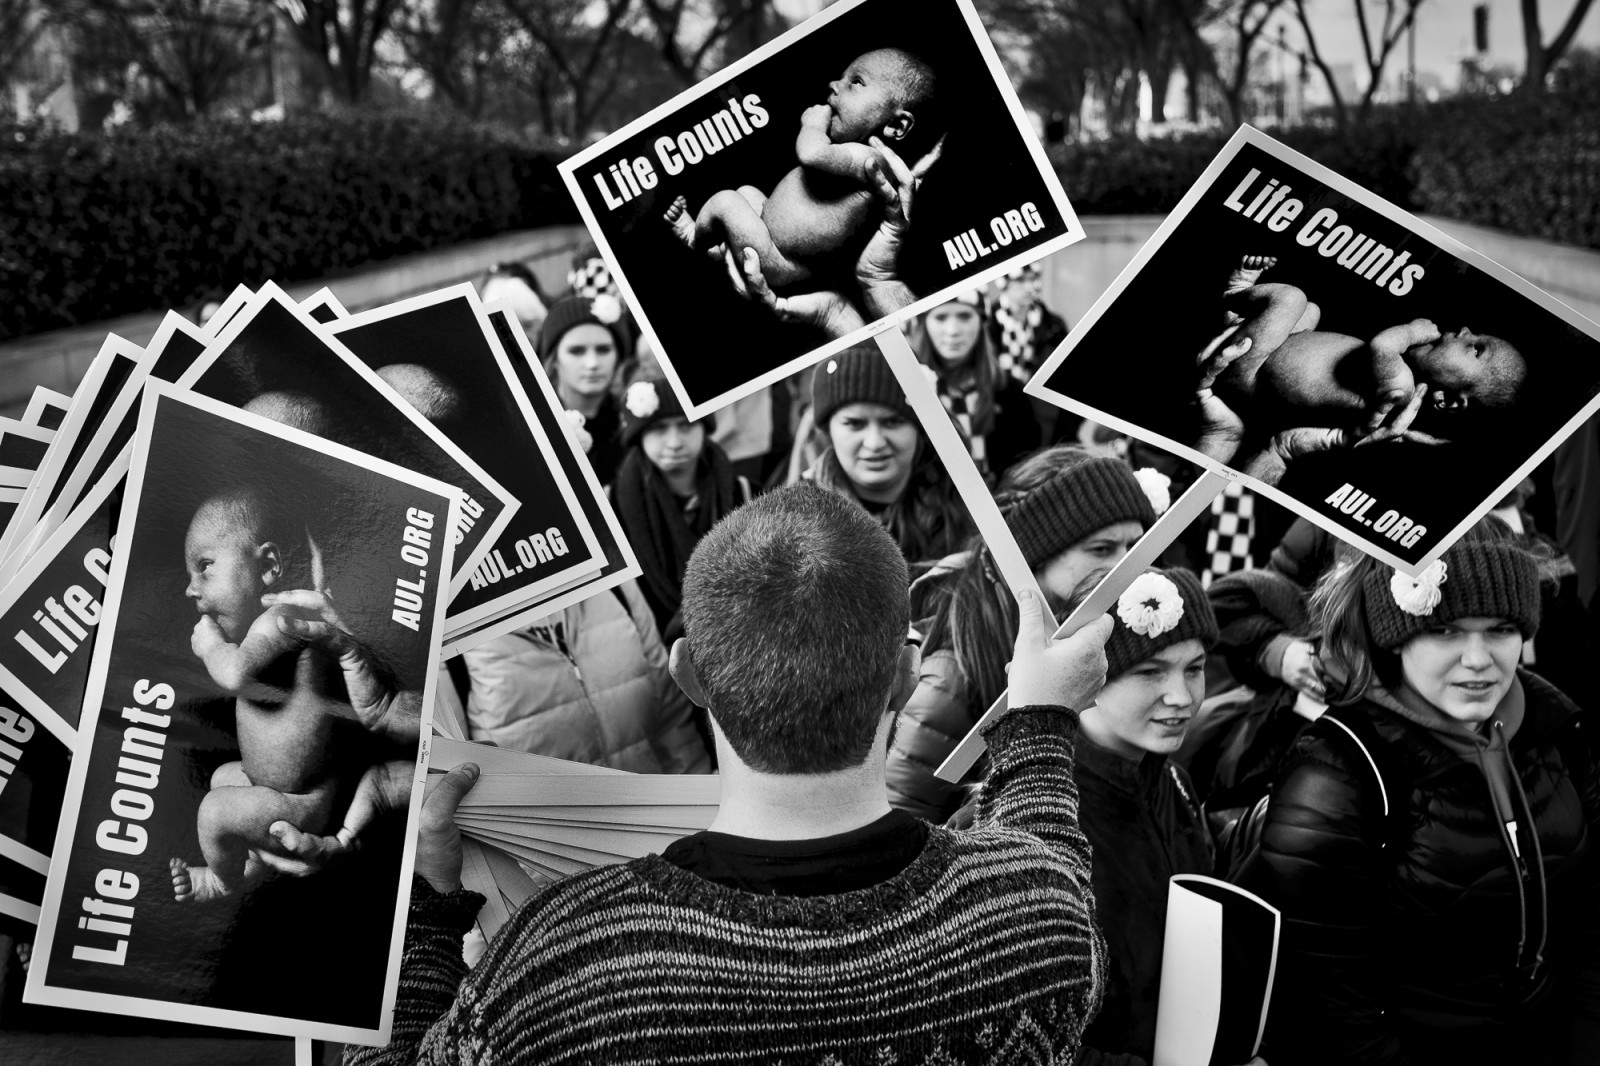 Anti-abortion activists take part in the 42nd March for Life in Washington, DC on January 22, 2015. Activists from across the nation participated in the annual pro-life rally protesting abortion and the 1973 Roe v. Wade Supreme Court decision legalizing abortion. UPI/Pete Marovich